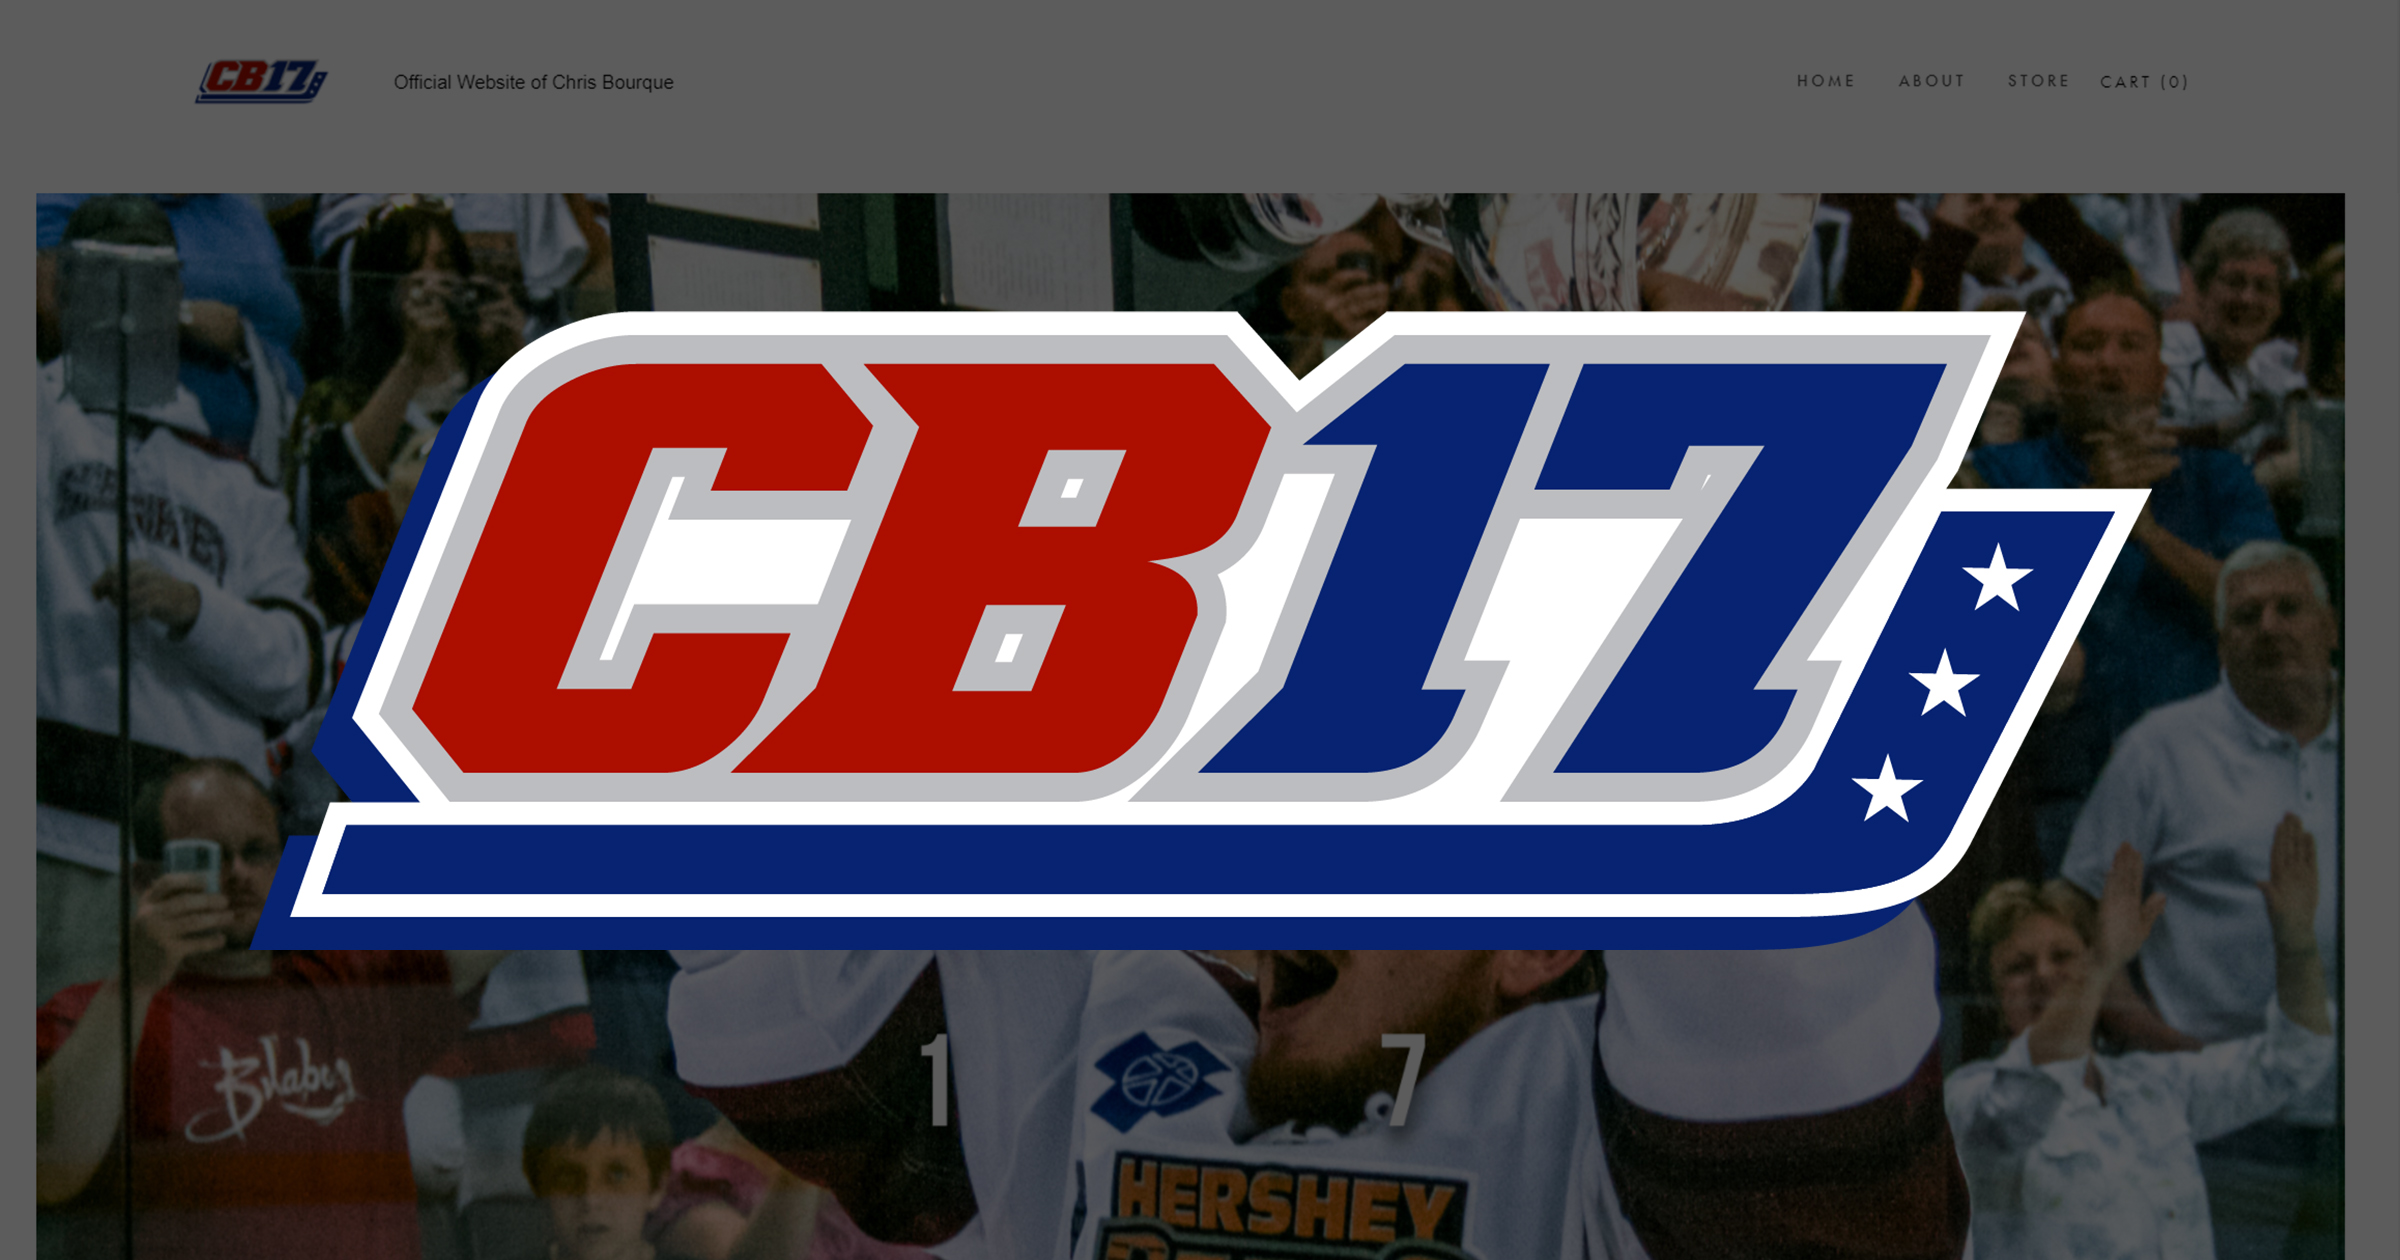 Chris Bourque Launches Official Website – ChrisBourque17.com